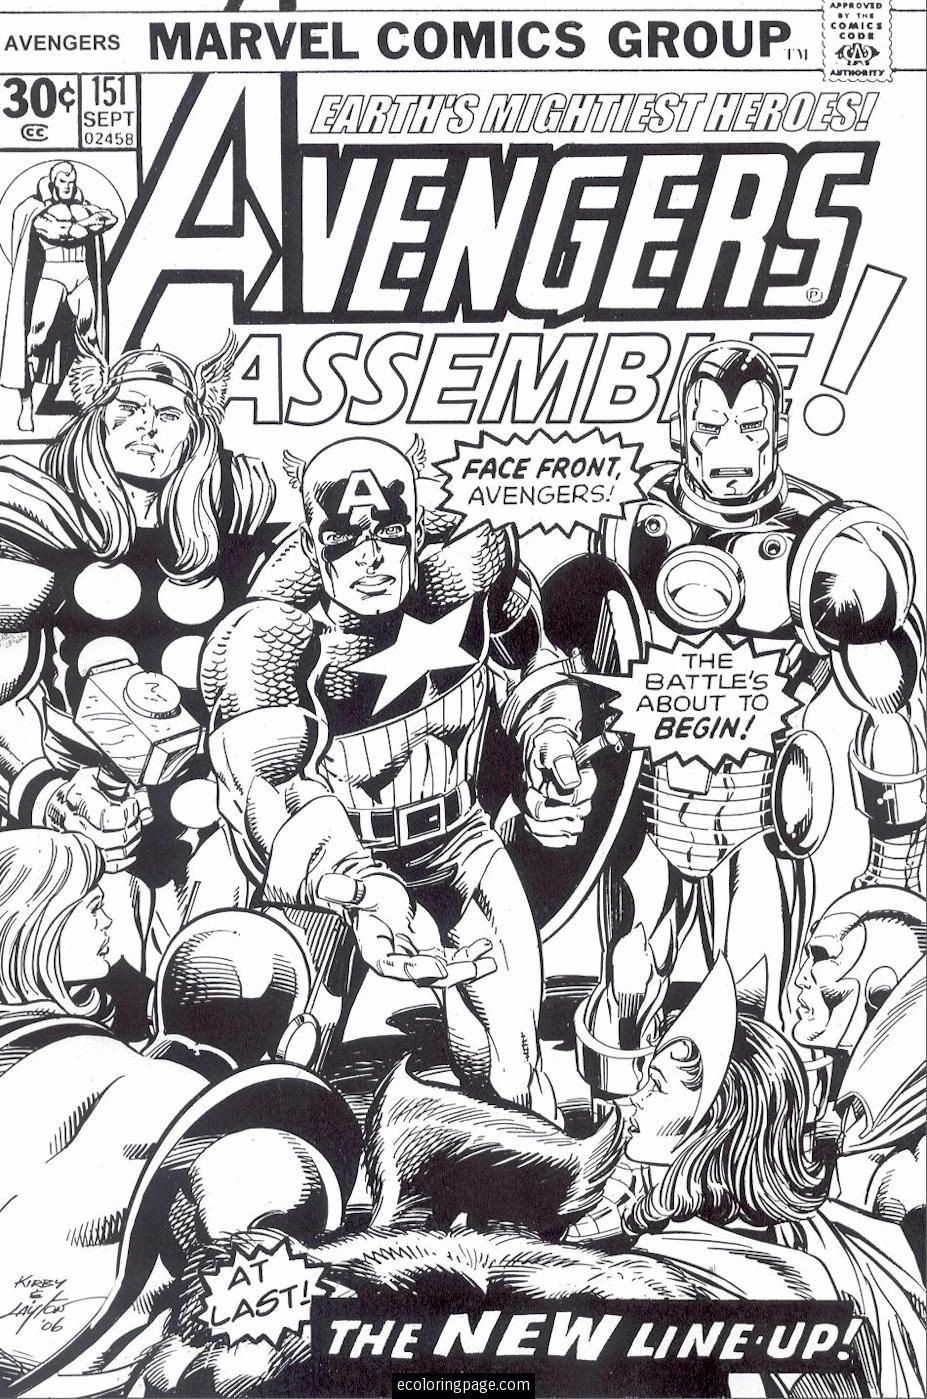 Marvel Coloring Books For Adults Coloring Book Marvel Superheroes Game Super Heroes In 2020 Avengers Coloring Avengers Coloring Pages Marvel Coloring